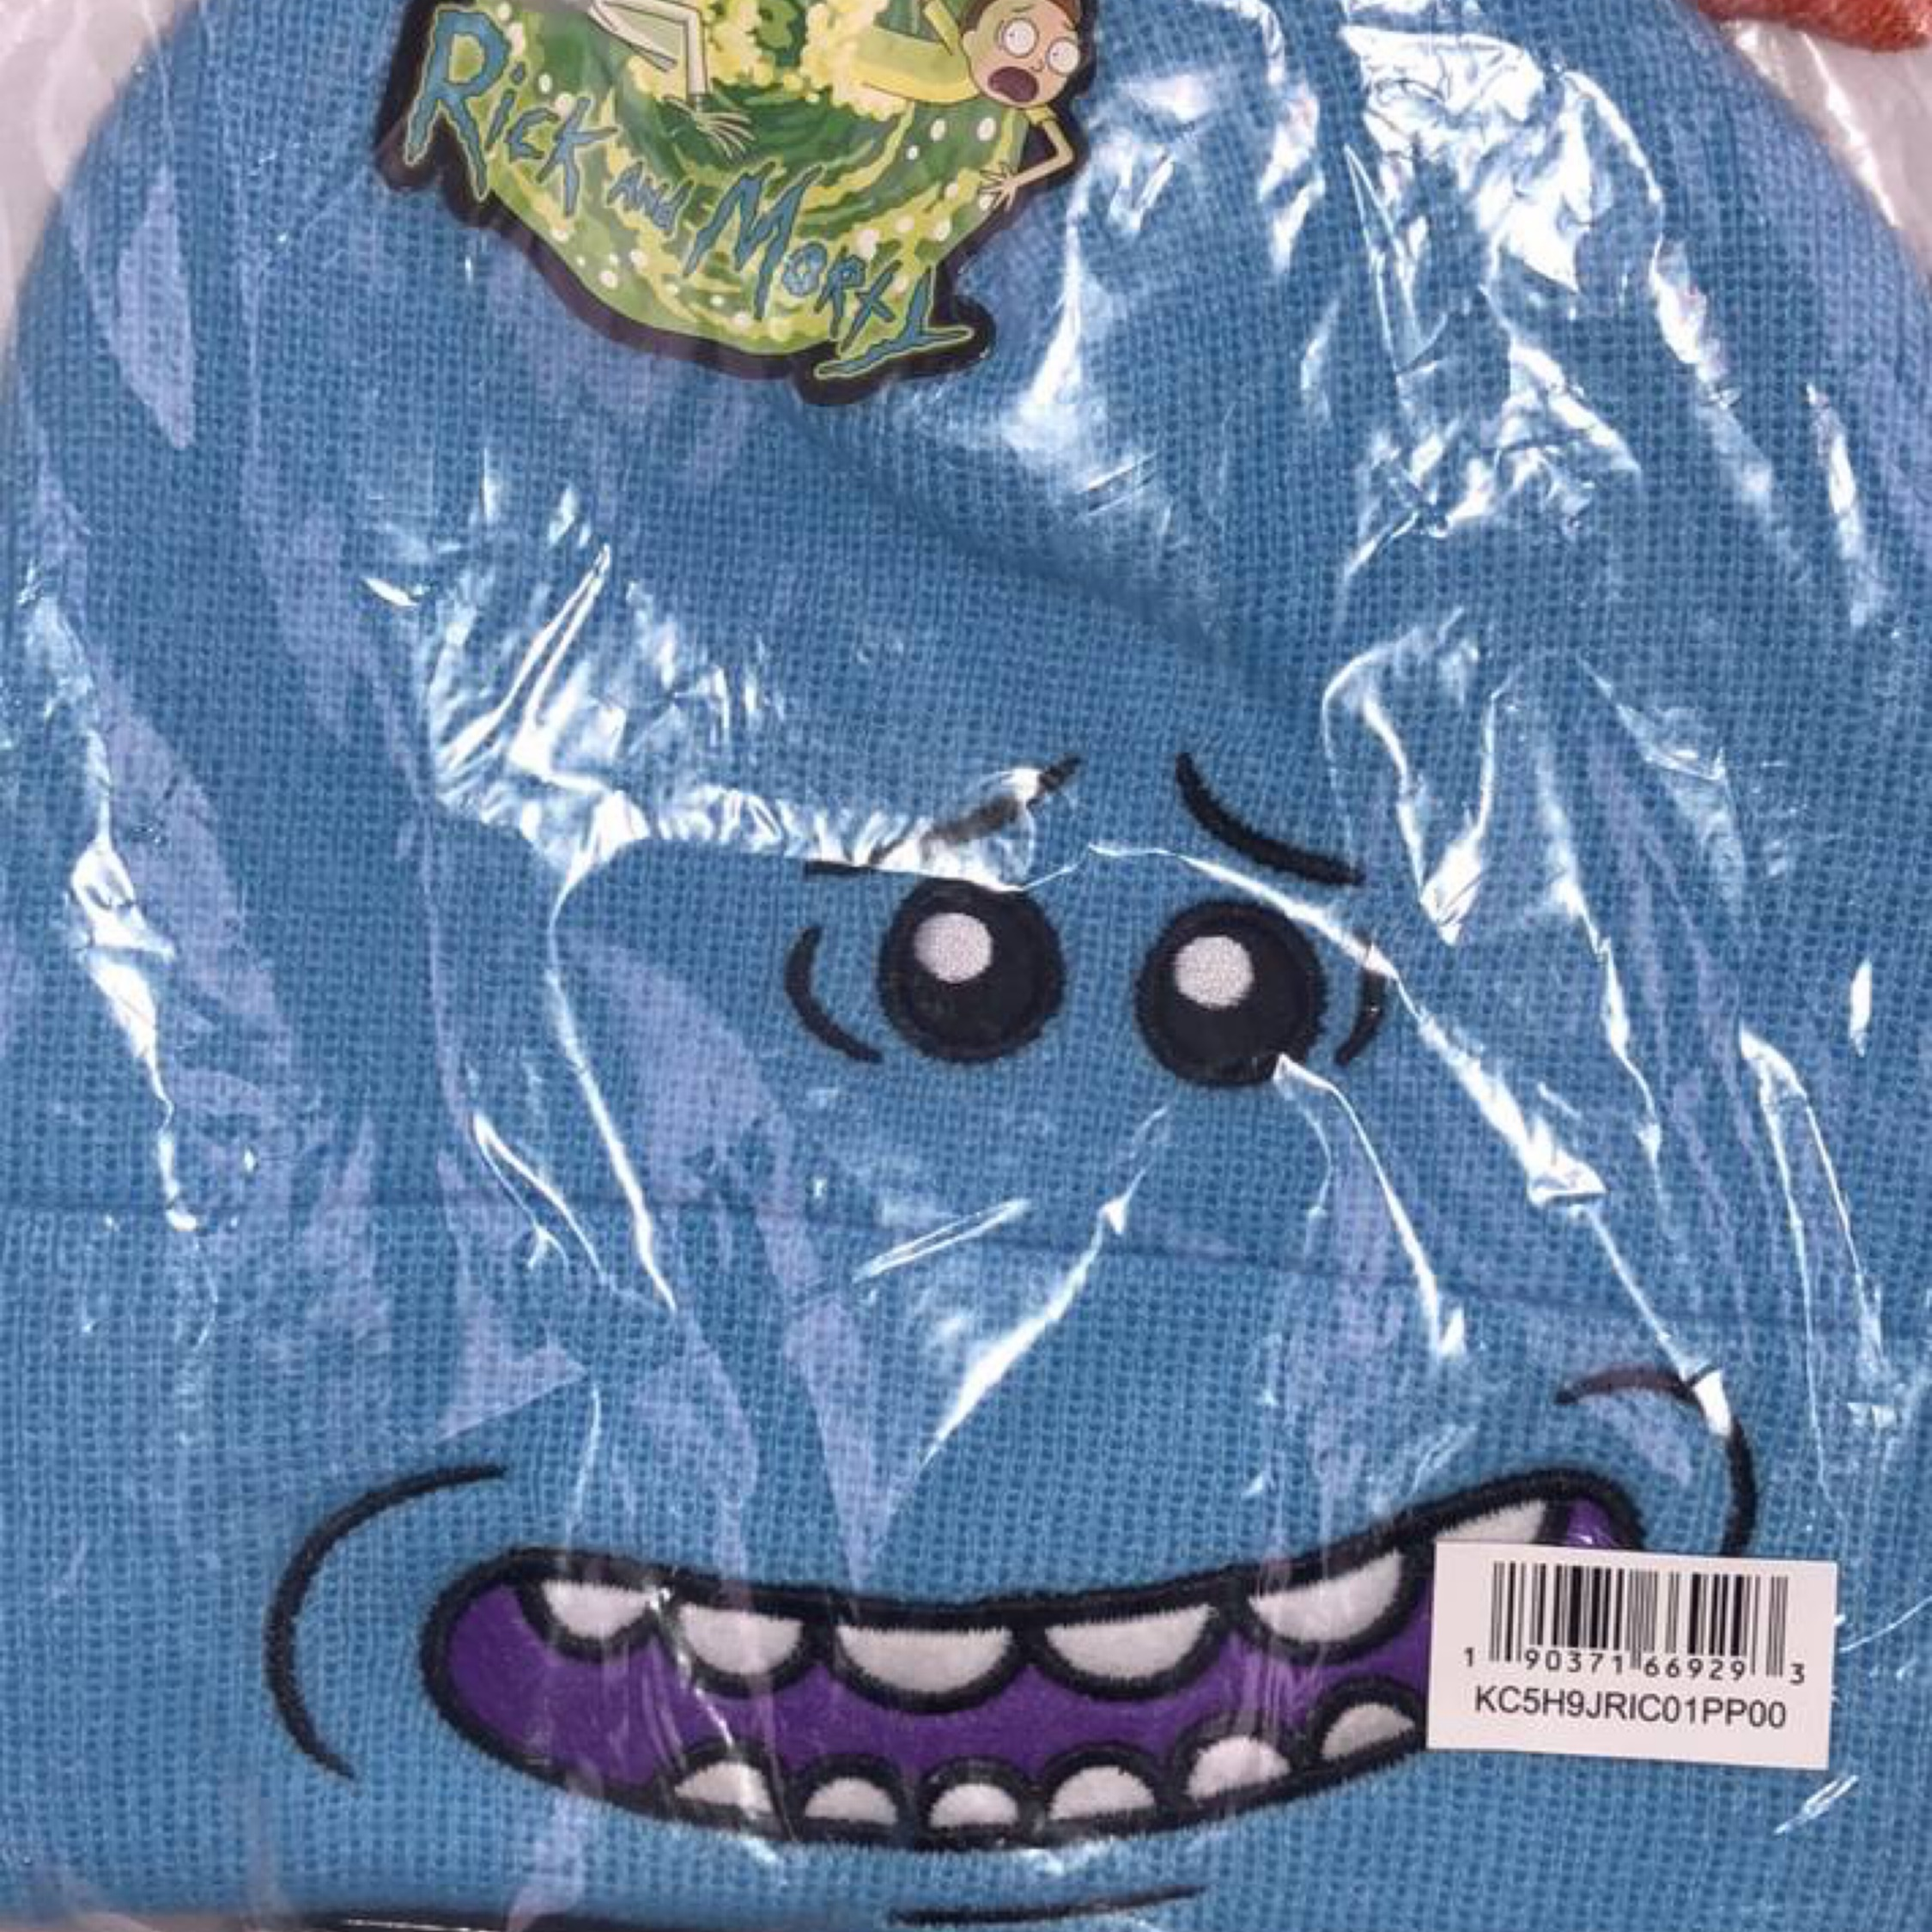 New Mr. Mecees Beanie From Rick & Morty